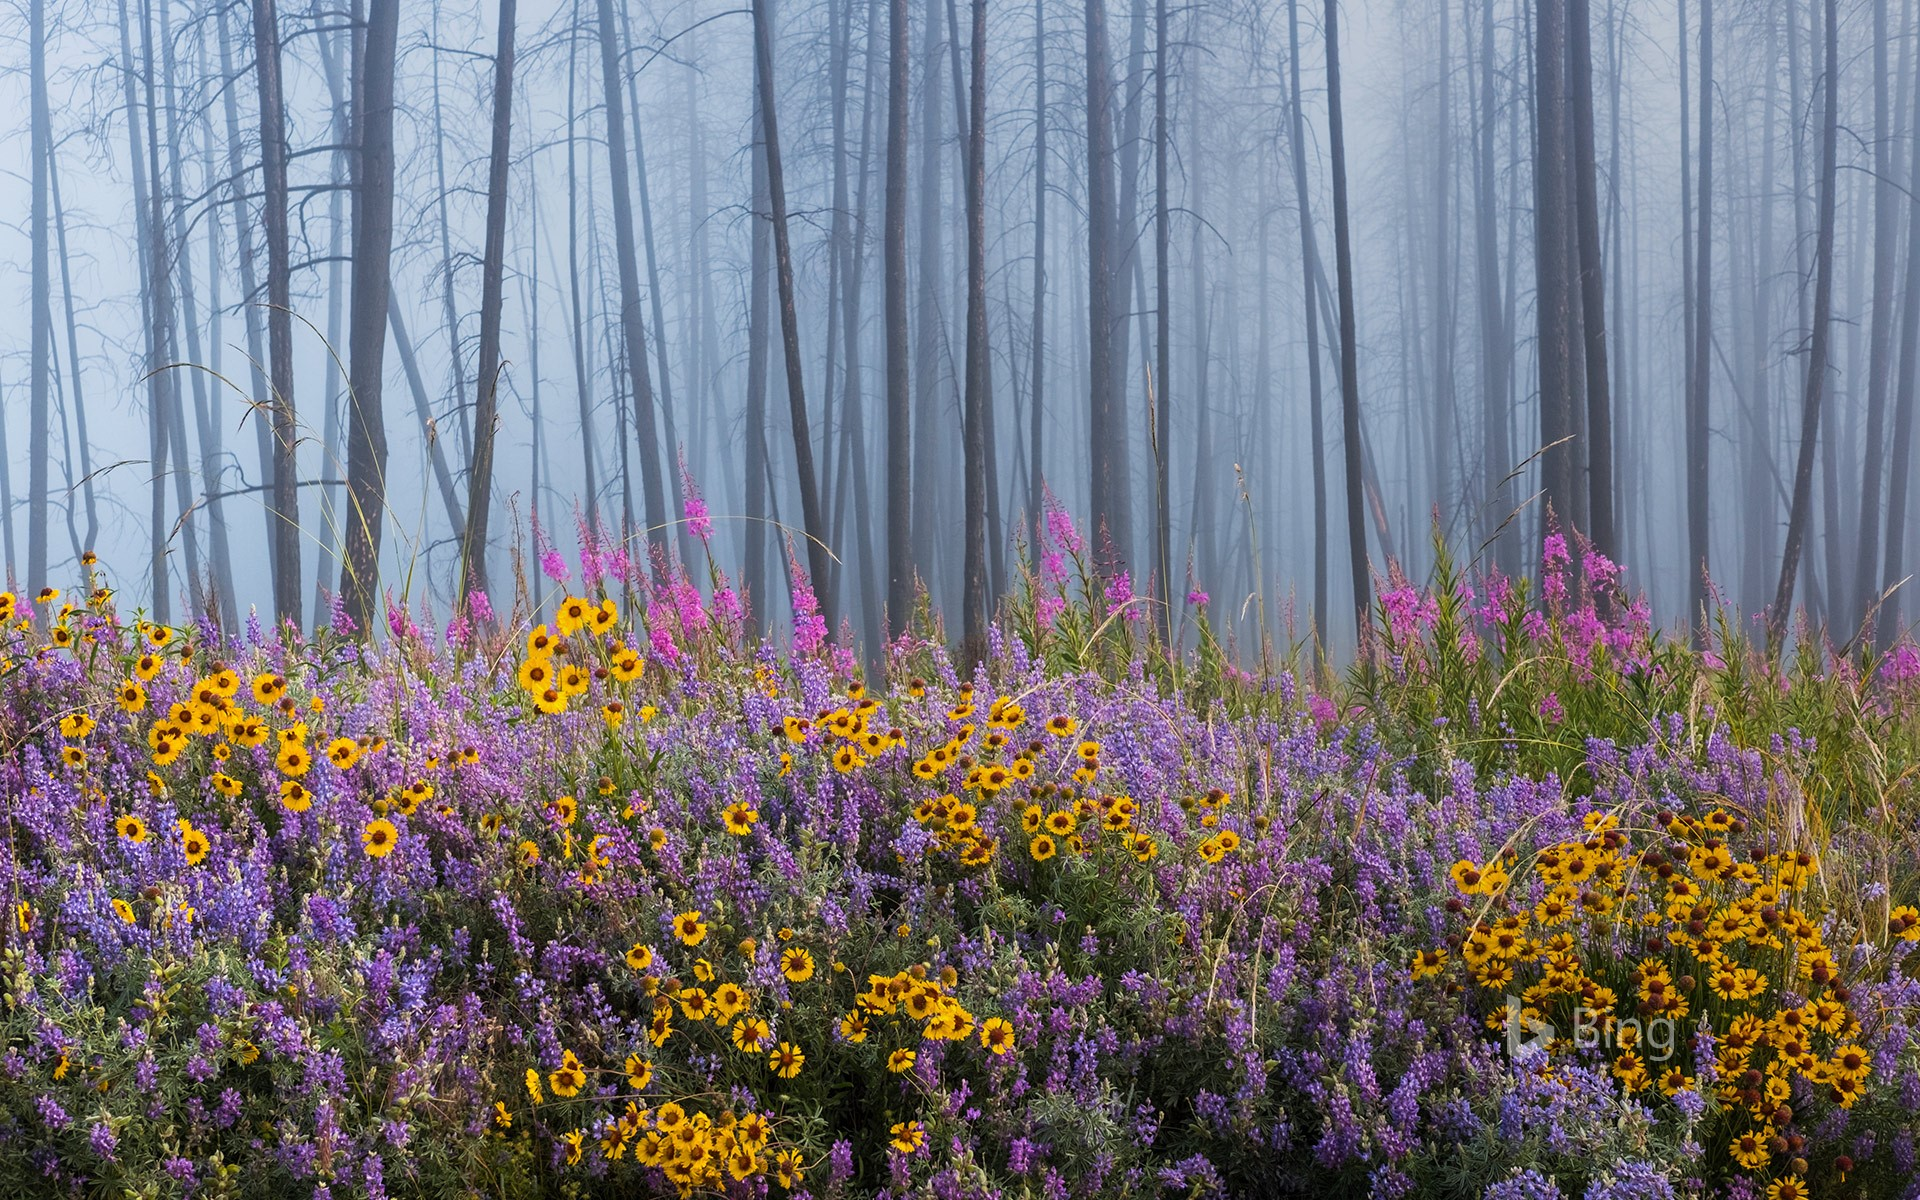 Kettle River Recreation Area bursting with wildflowers after a fire destroyed much of the forest, British Columbia, Canada